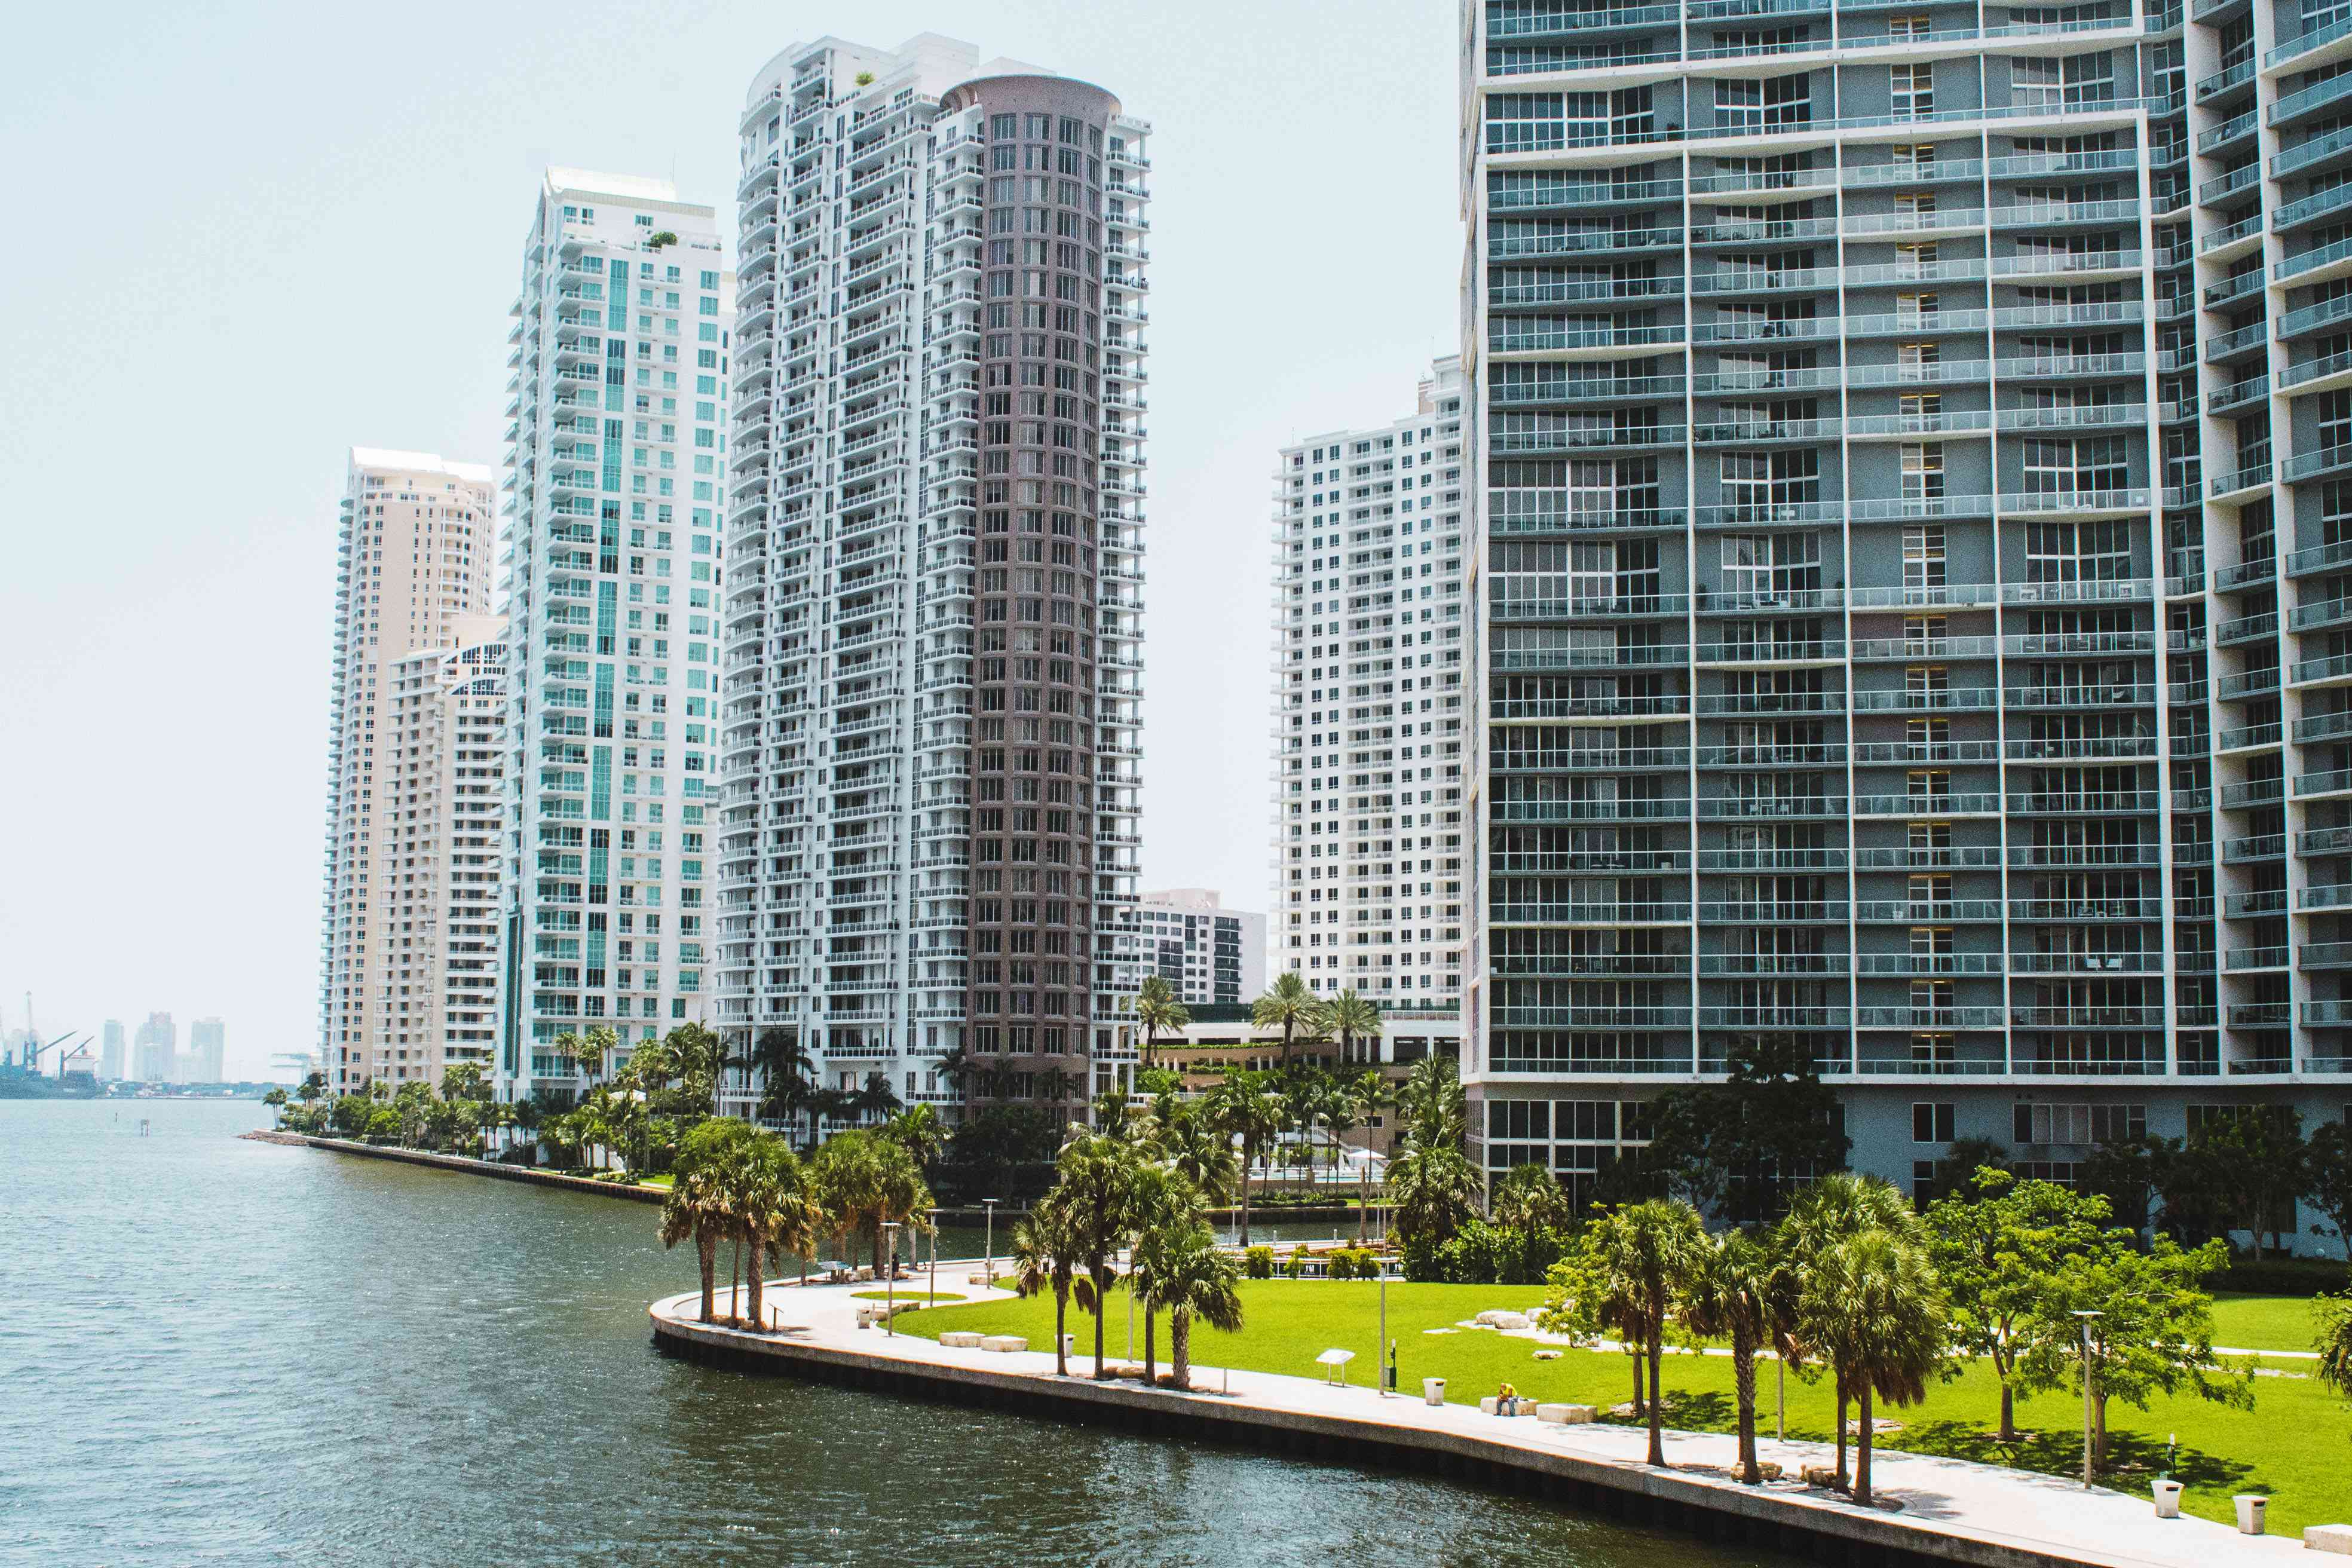 View of Brickell Point